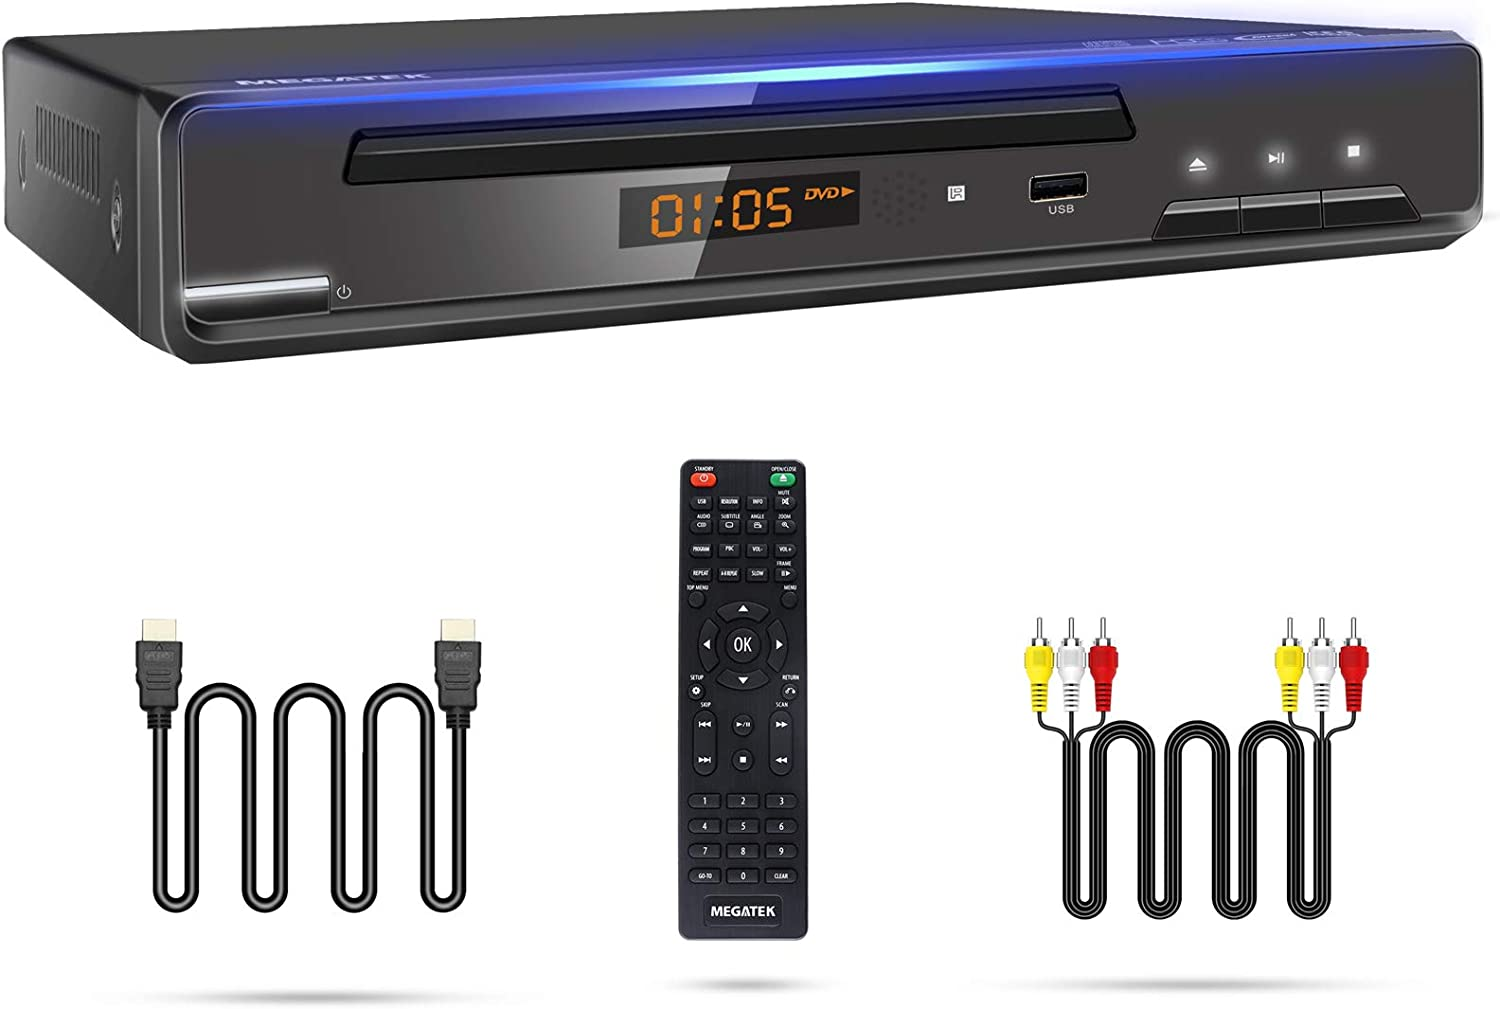 Megatek DVD Player, Compact DVD Player for TV with HDMI/AV/Coaxial Outputs, CD Player for Home, Multi-Region Region-Free DVDs, DivX, MP4, MP3, USB, PAL/NTSC System, Metal Case, w/ Remote & HDMI Cable